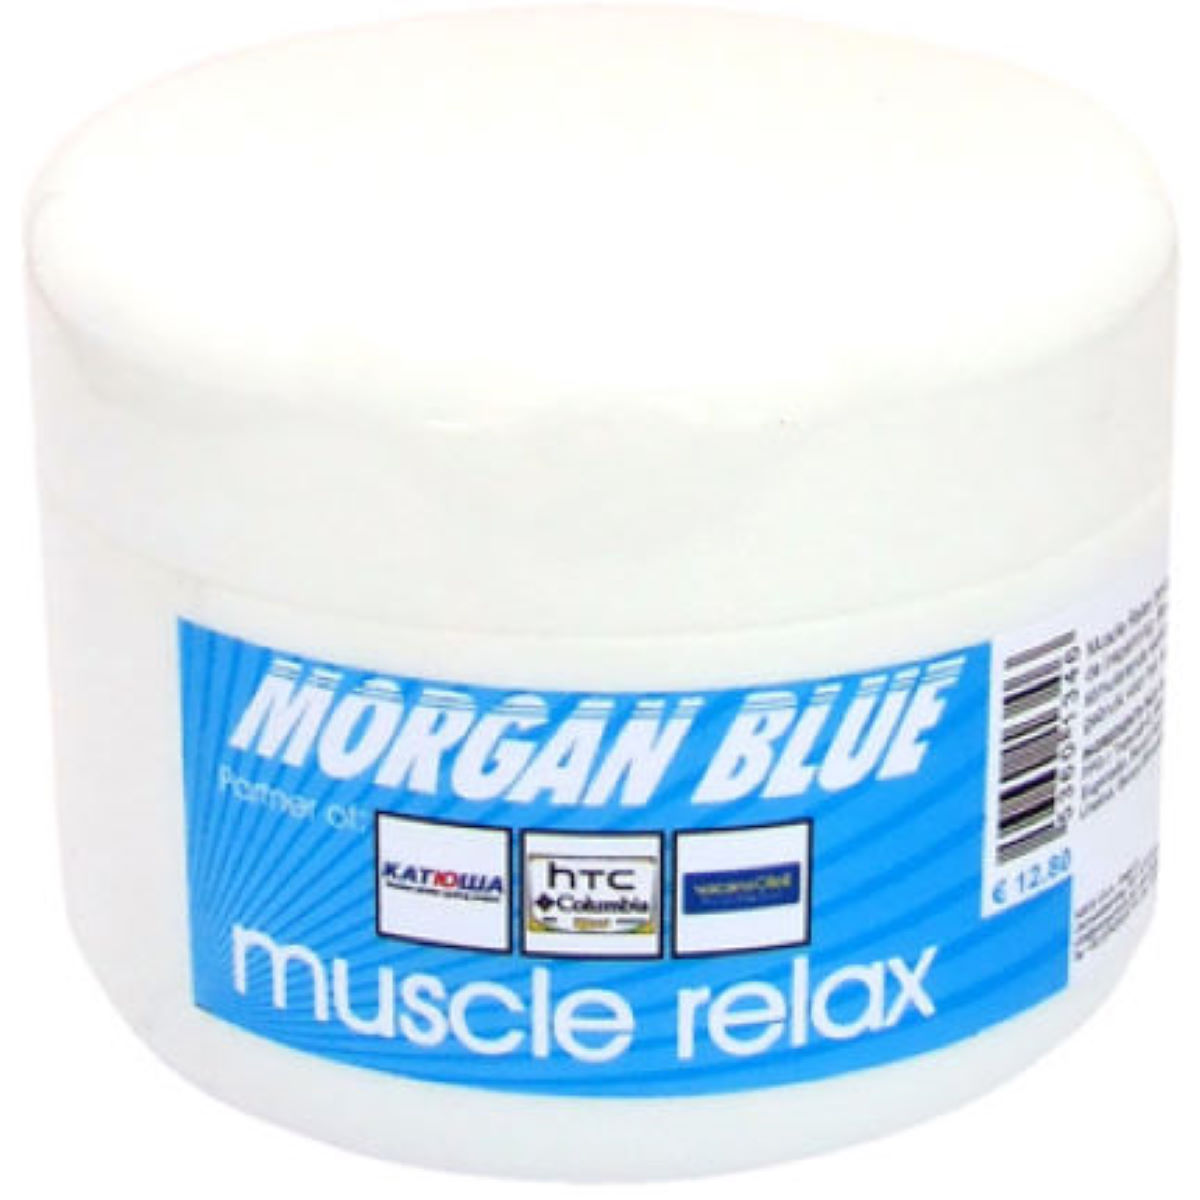 Tube Morgan Blue Muscle Relax (200 ml) - 200ml Soins musculaires